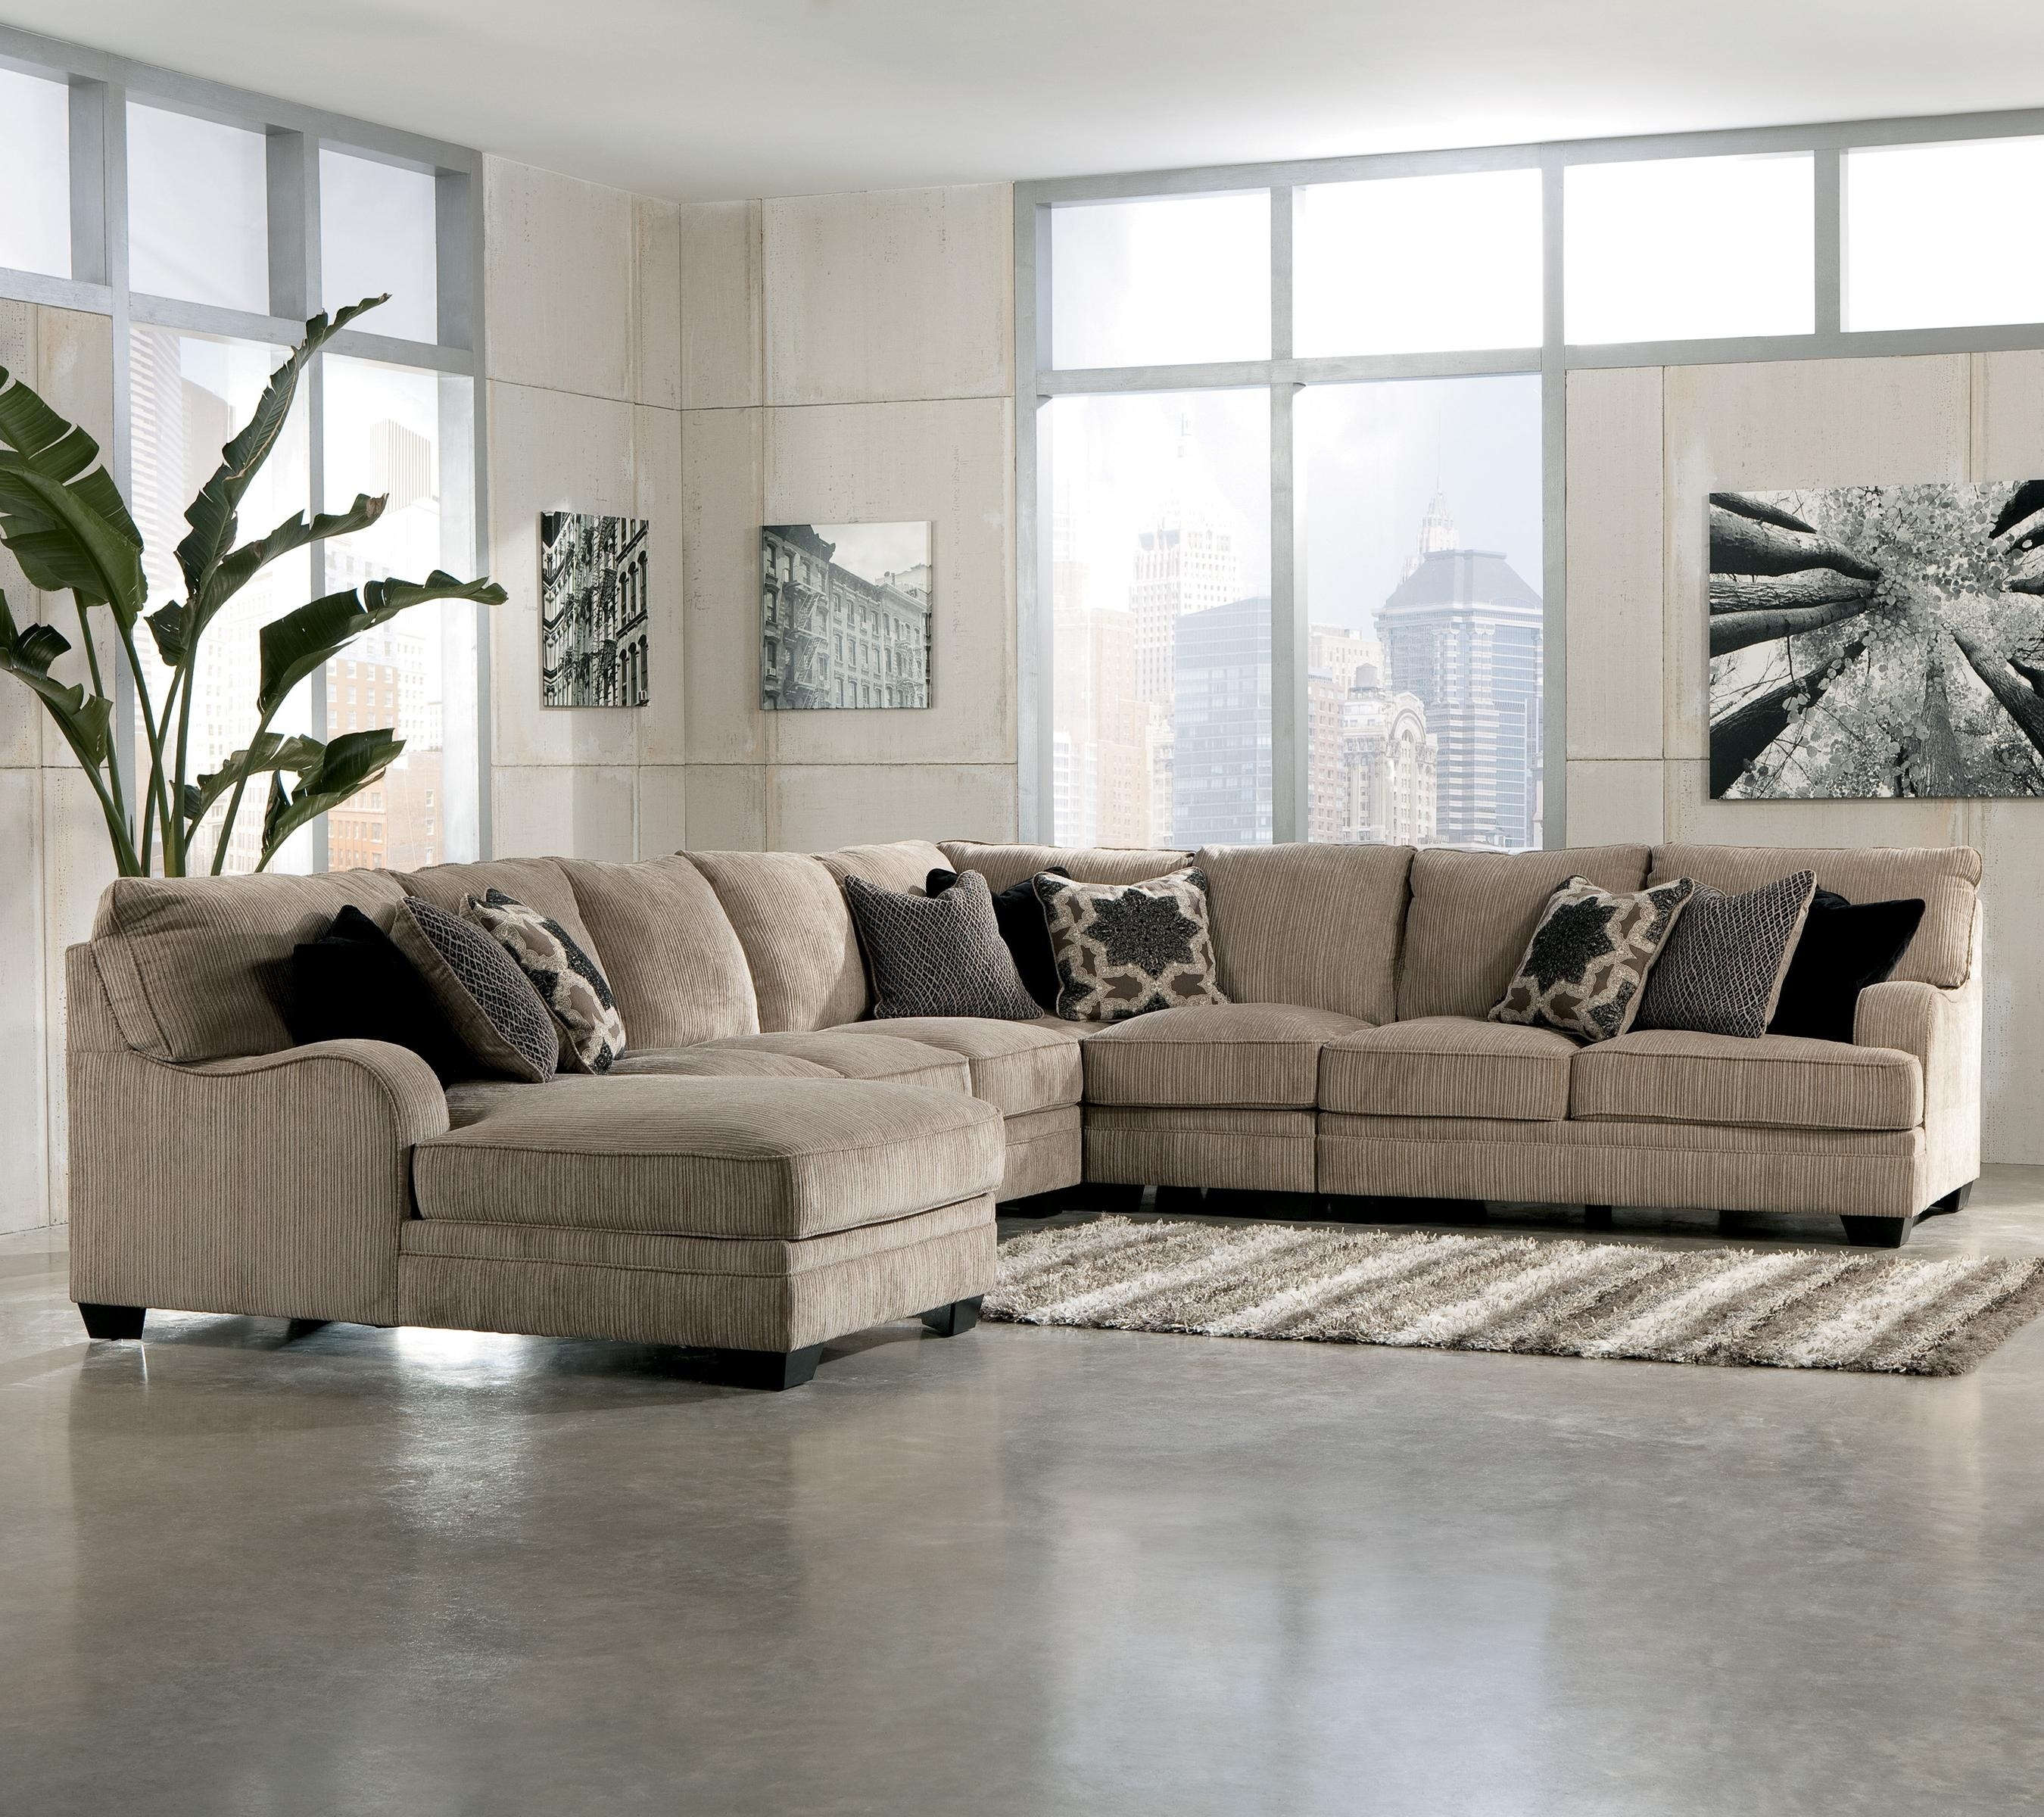 Signature Designashley Katisha – Platinum 5 Piece Sectional Sofa Inside St Cloud Mn Sectional Sofas (View 9 of 10)